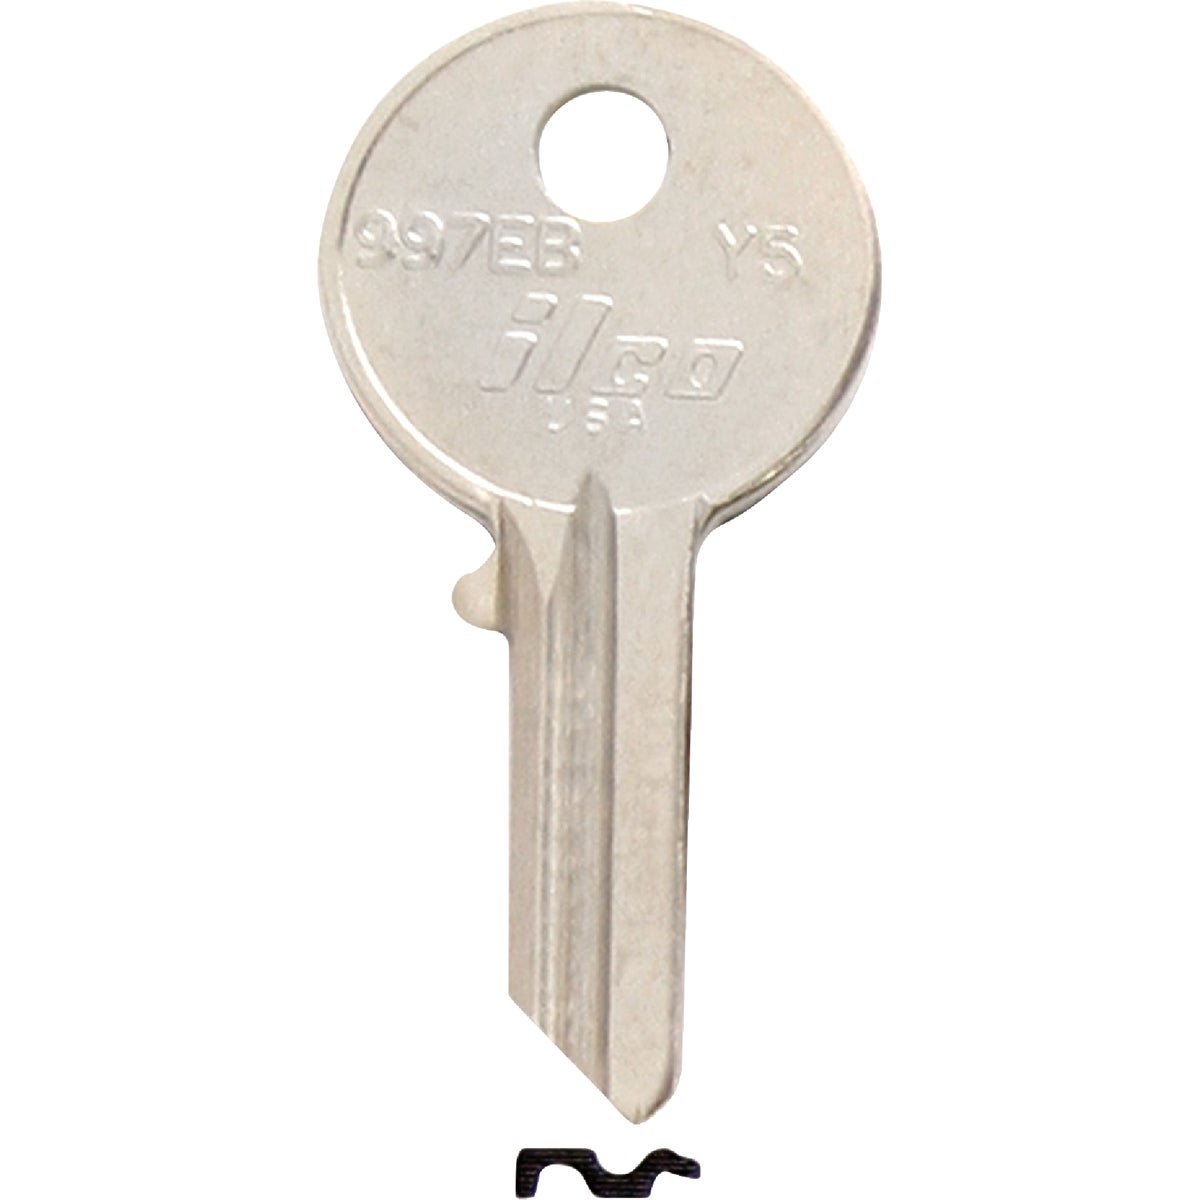 Y5 YALE DOOR KEY - 997EB by Ilco Corp